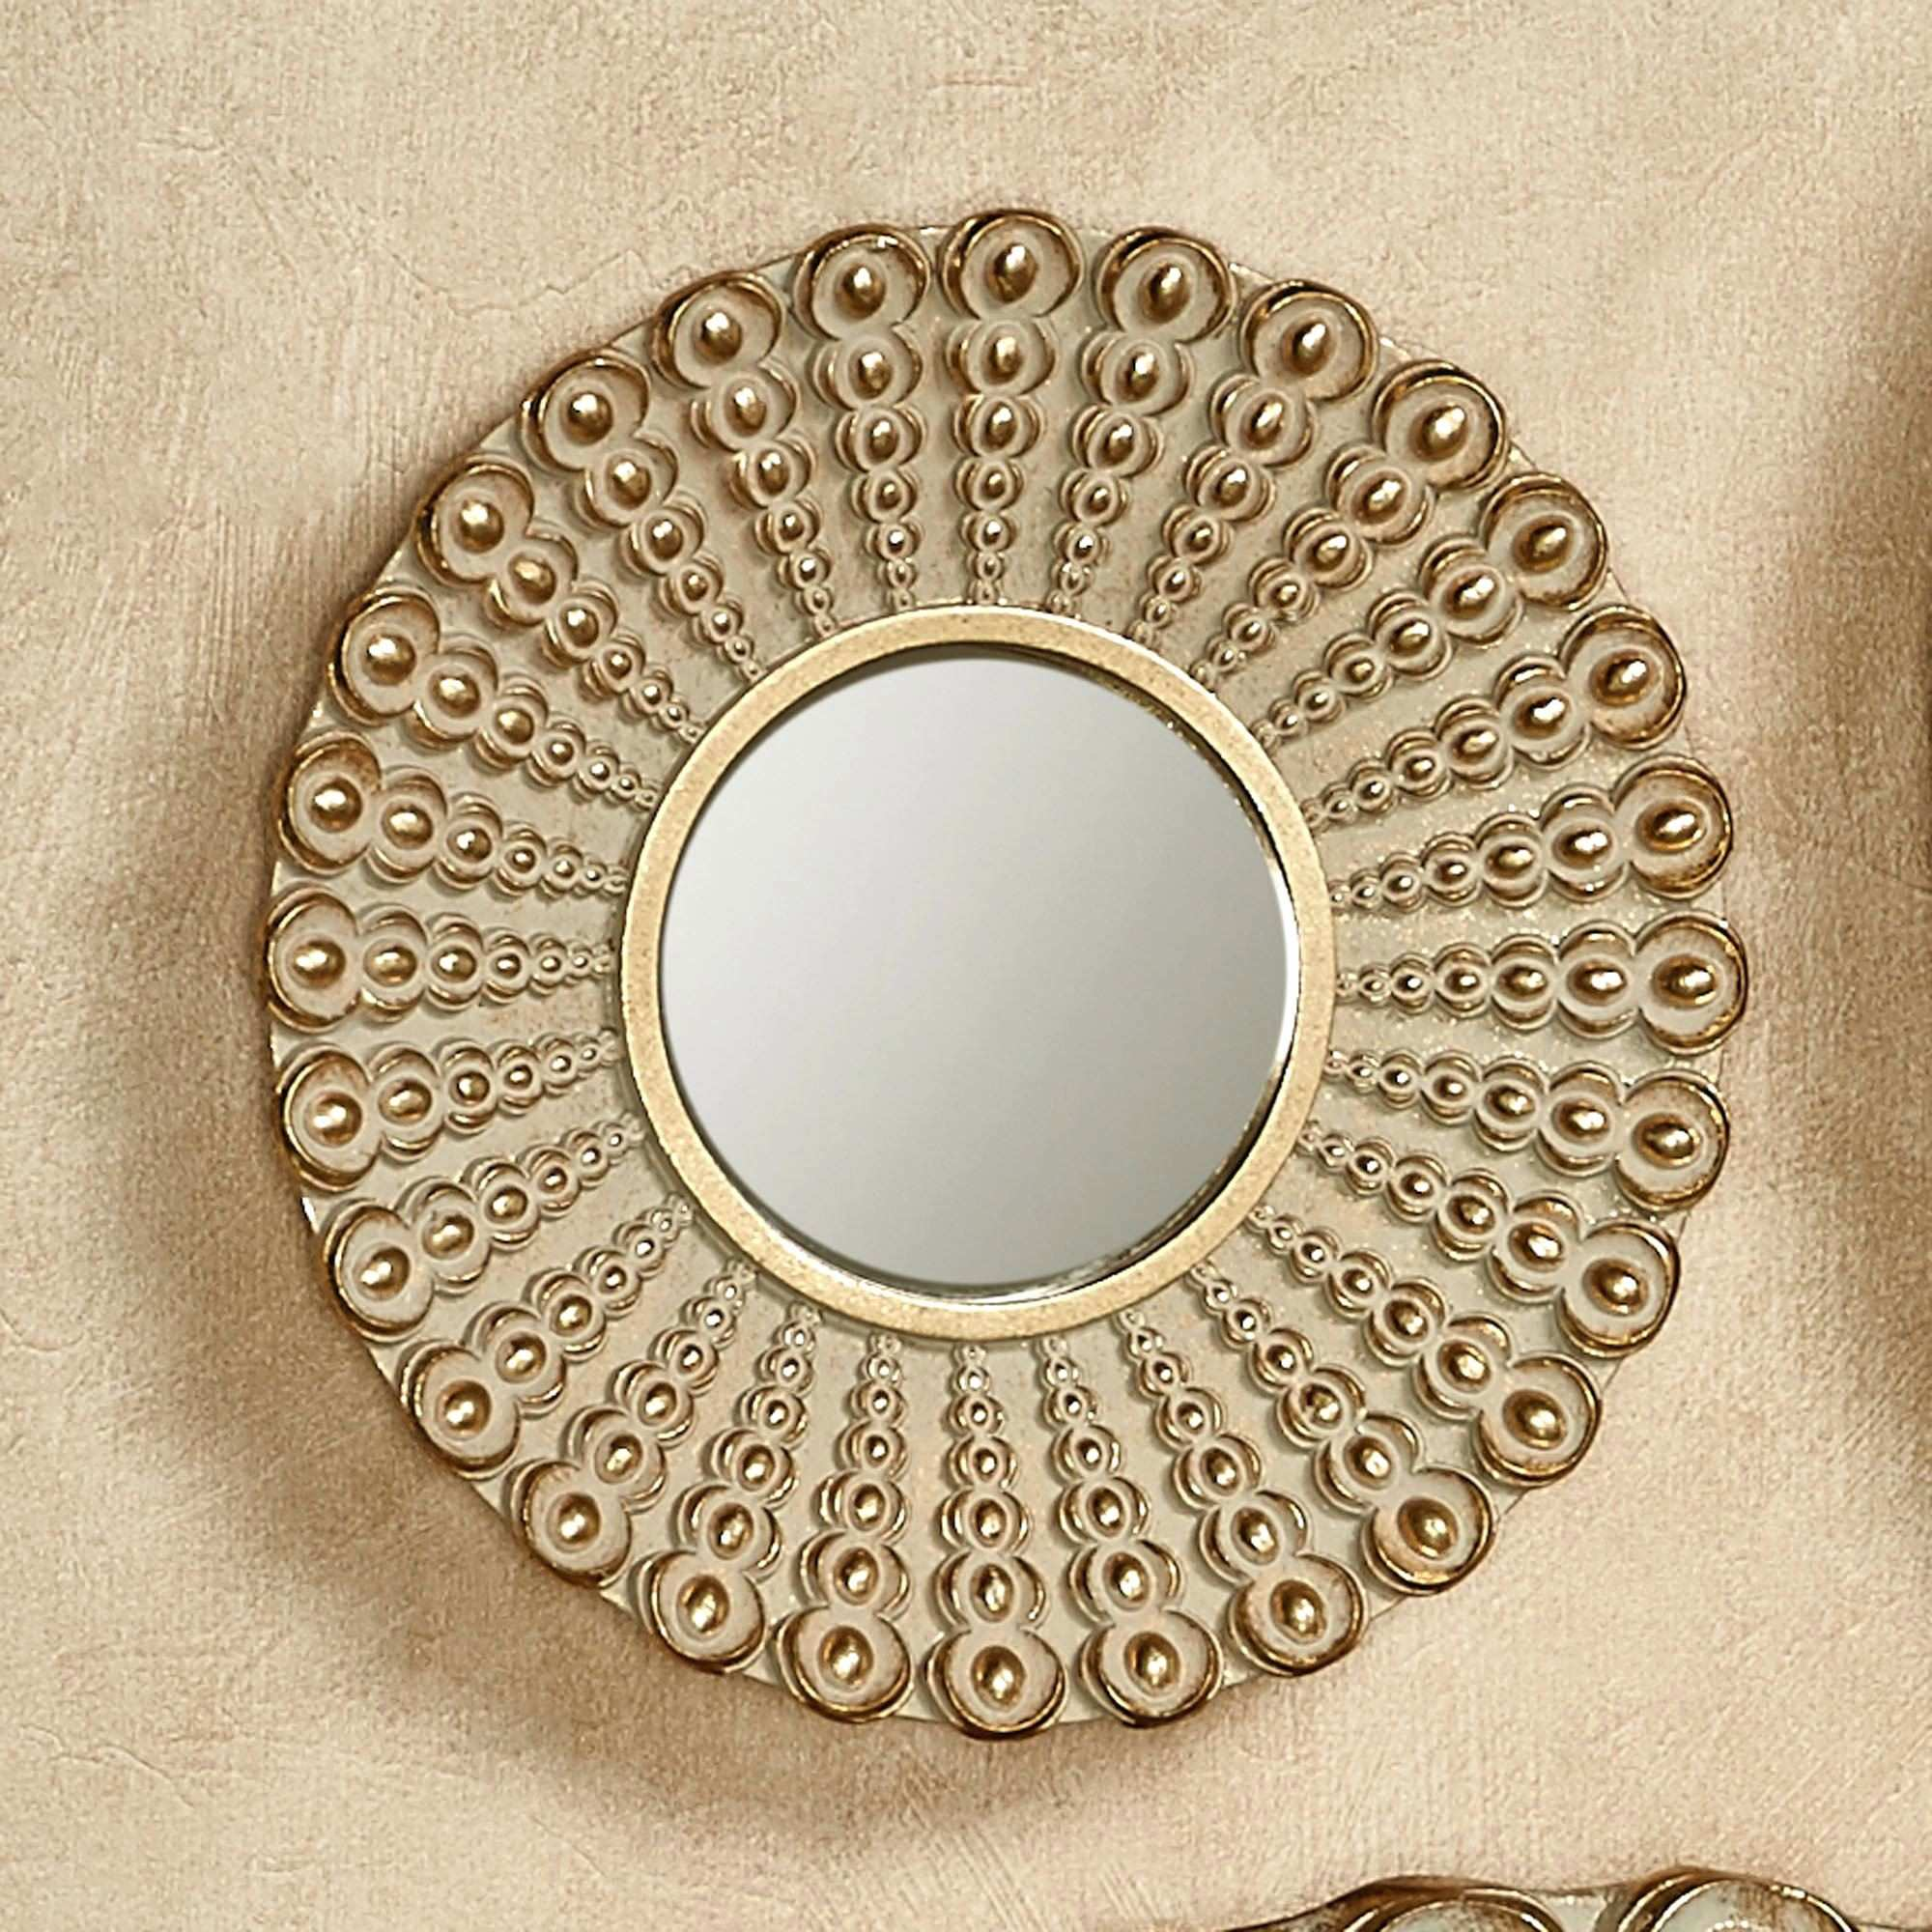 Wall Mirrors 20 Glass Small Round Floating Wall Mirror Side View